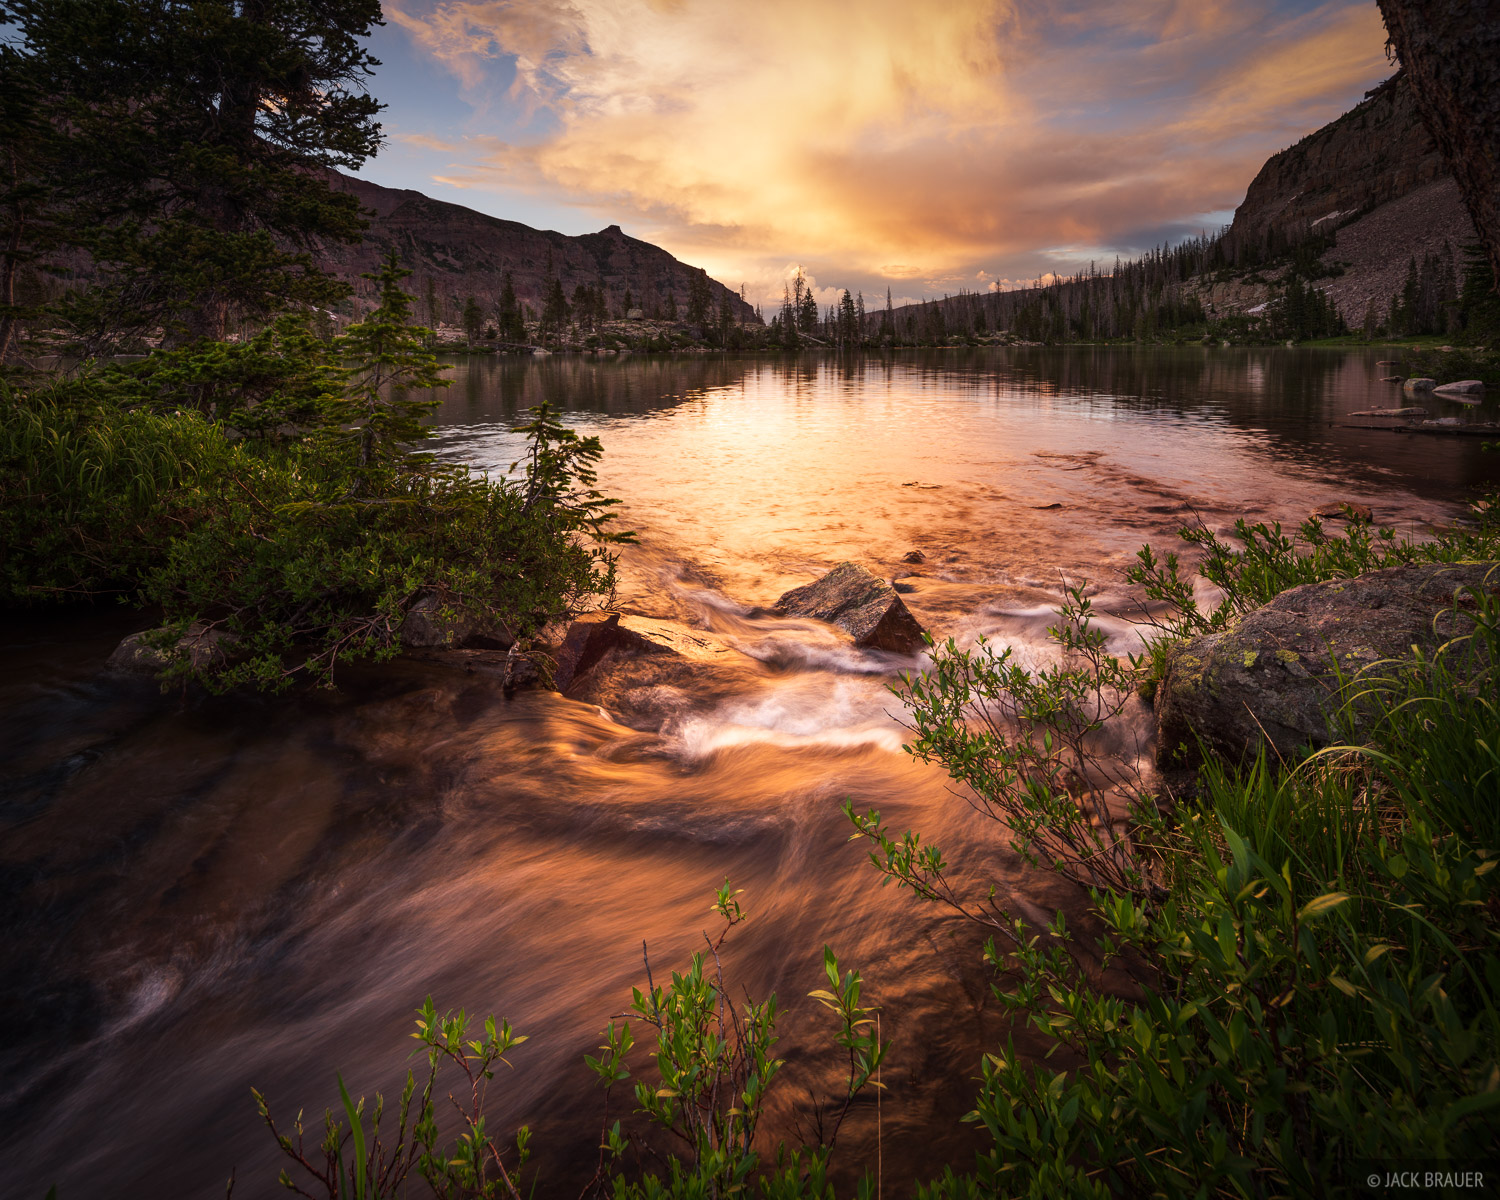 Bear River, High Uintas Wilderness, Kermsuh Lake, Stillwater Fork, Uintas, Utah, West Basin, sunset, photo